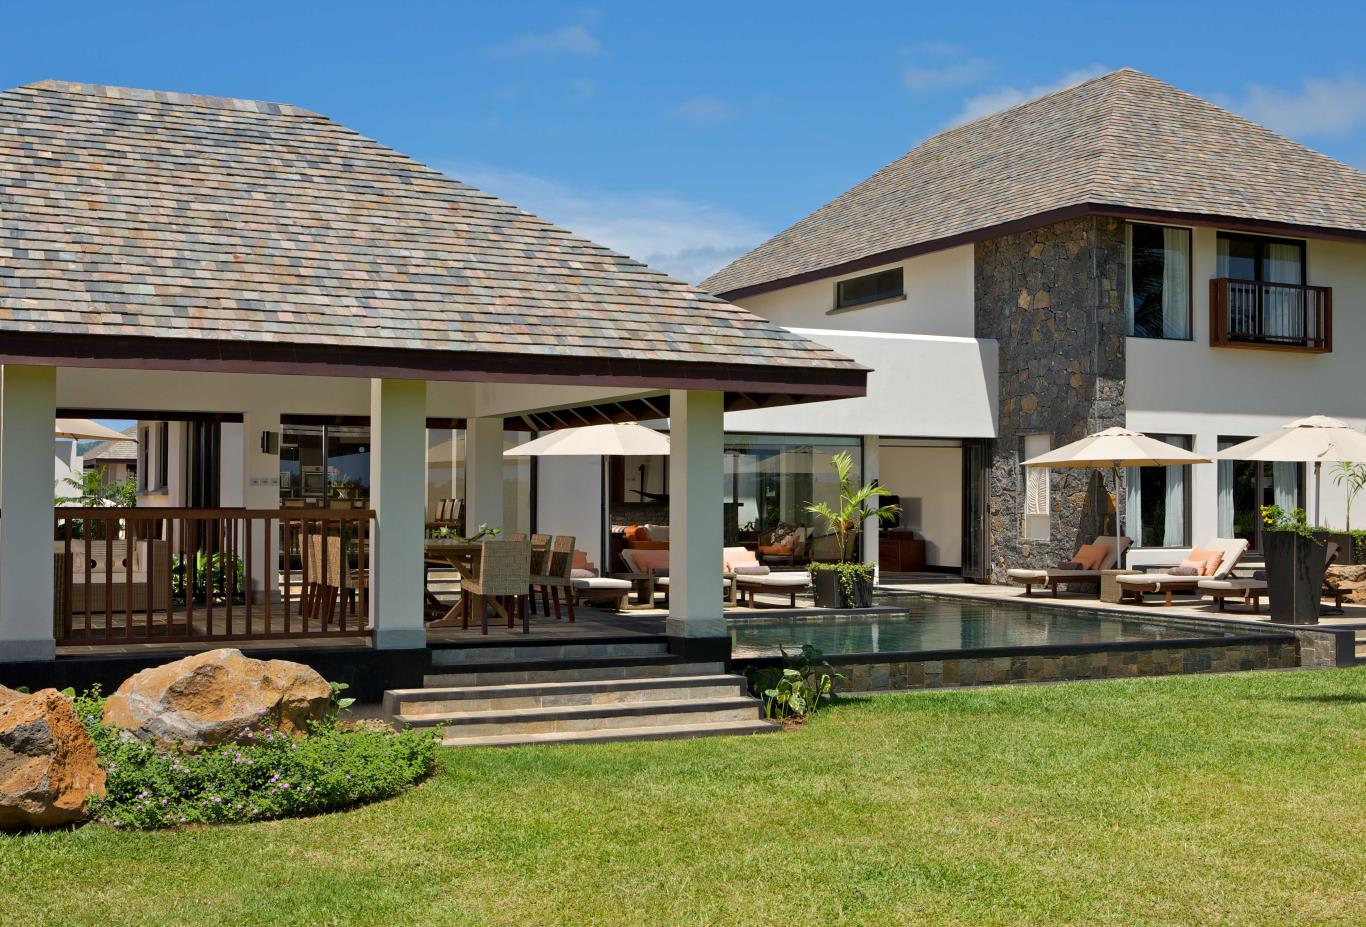 Prestige villa from outdoors